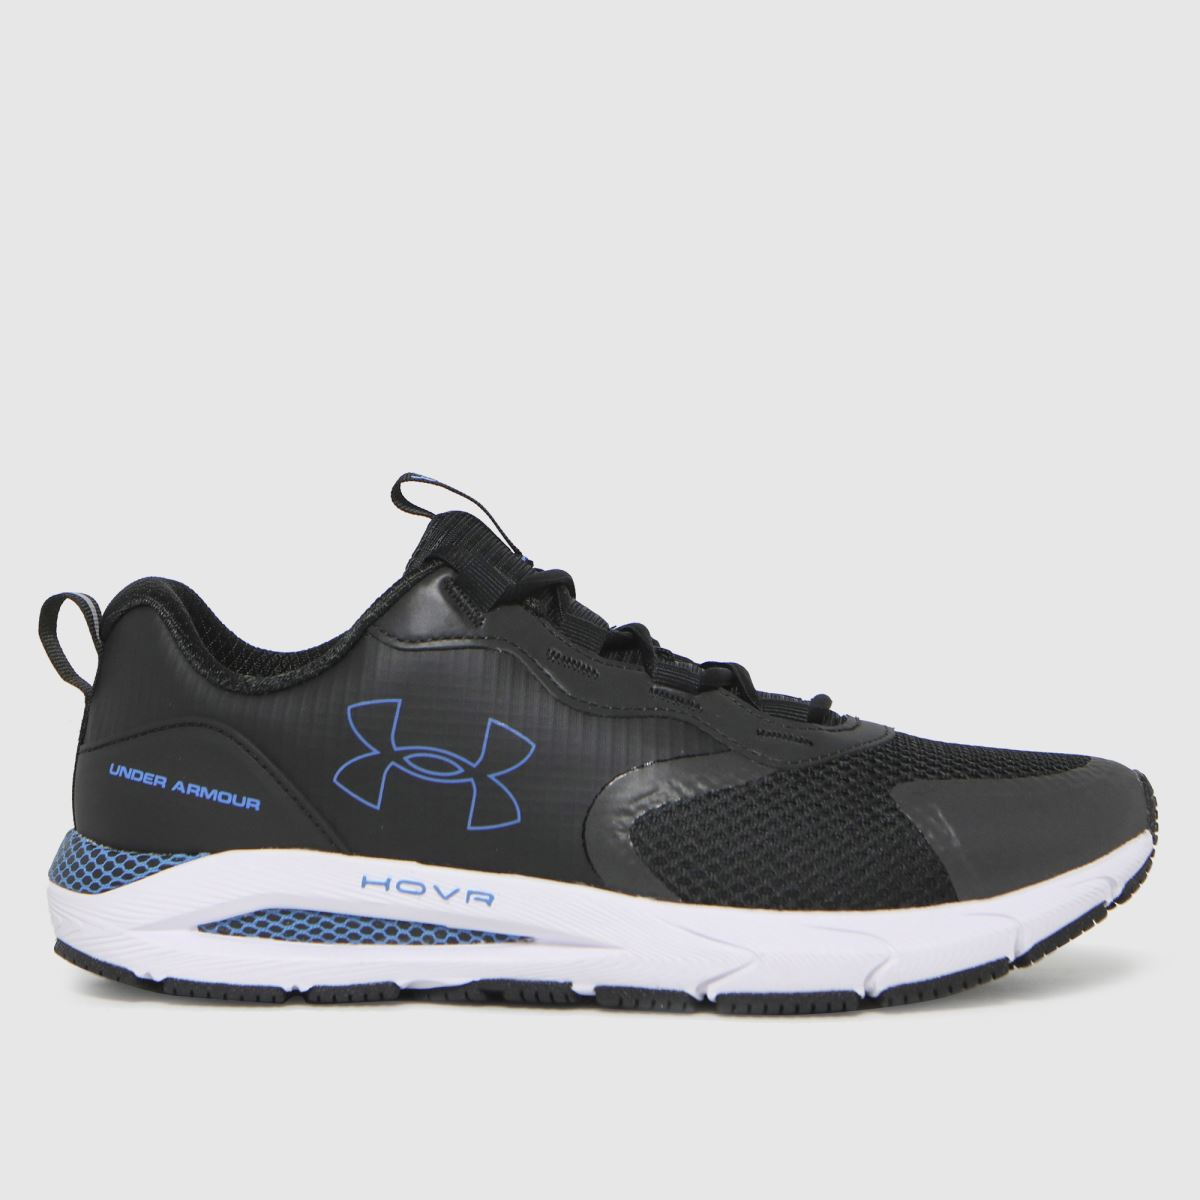 Under Armour Black & White Hovr Sonic Strt Rflct Trainers